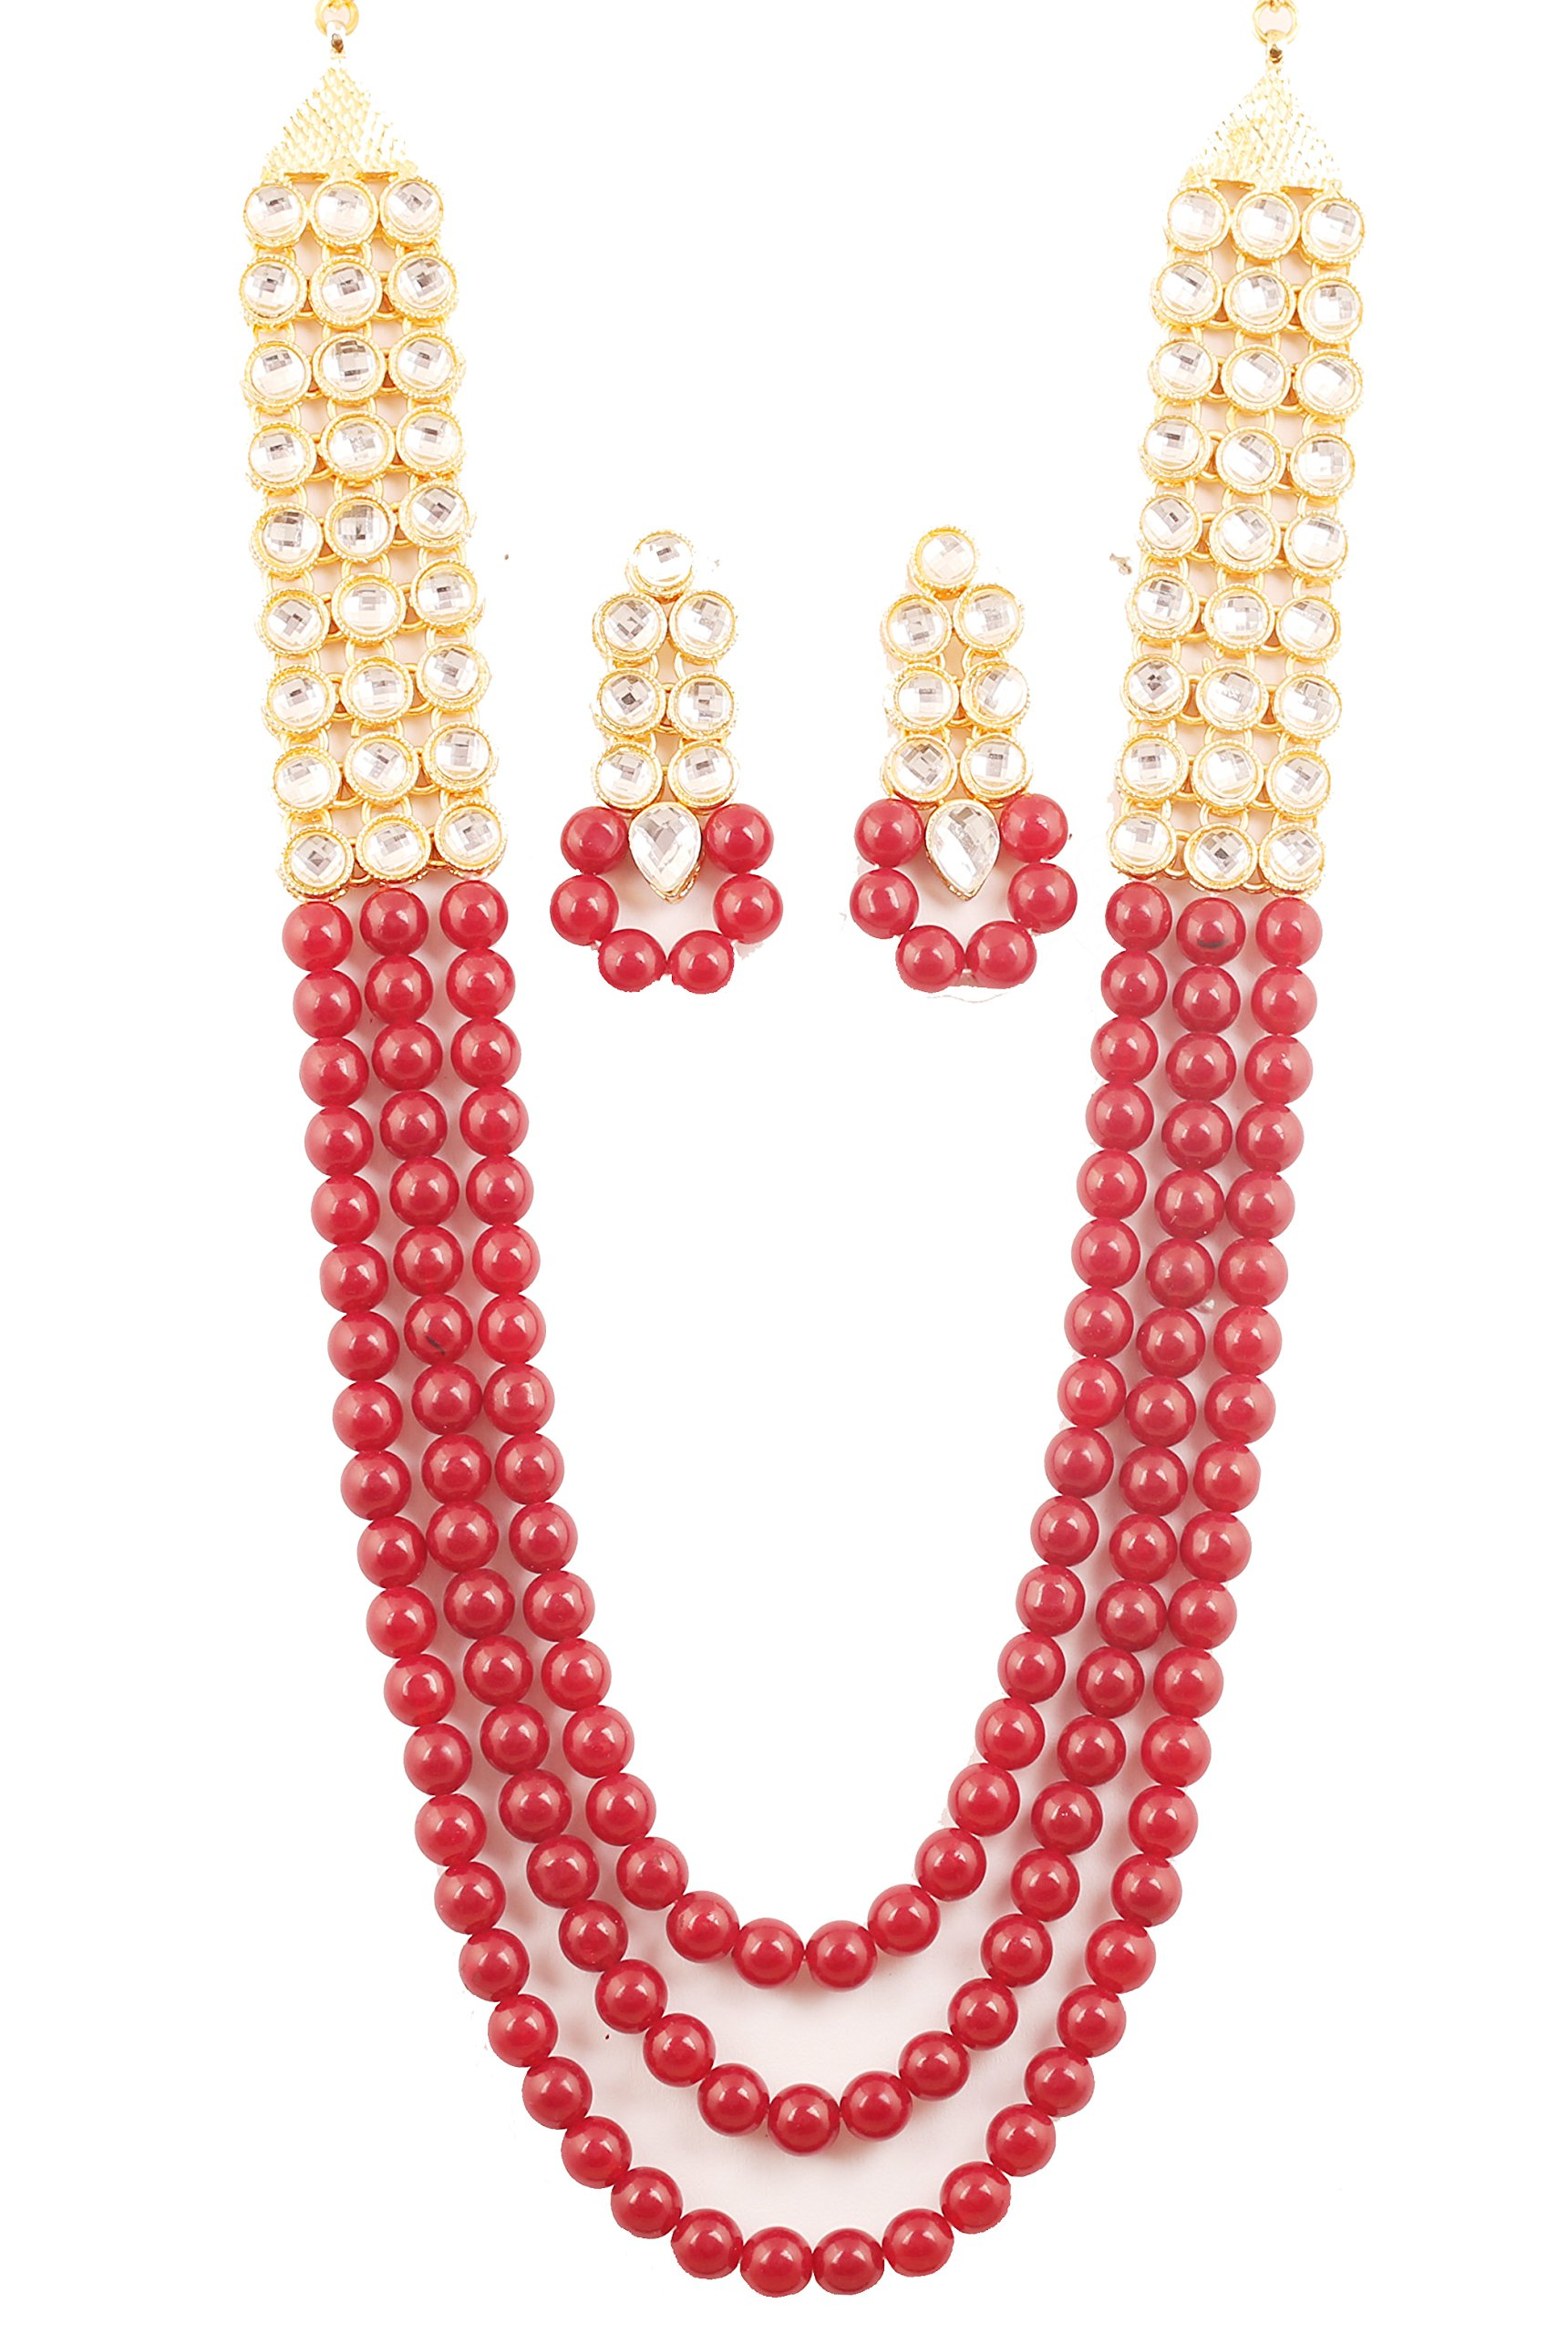 NEW! Touchstone ''Contemporary Kundan Collection'' Indian Bollywood Fine Mughal Craftsmanship Kundan Look Identical Red Onyx Triple Line Strings Long Wedding Designer Jewelry Necklace Set In Antique Gold Tone For Women.